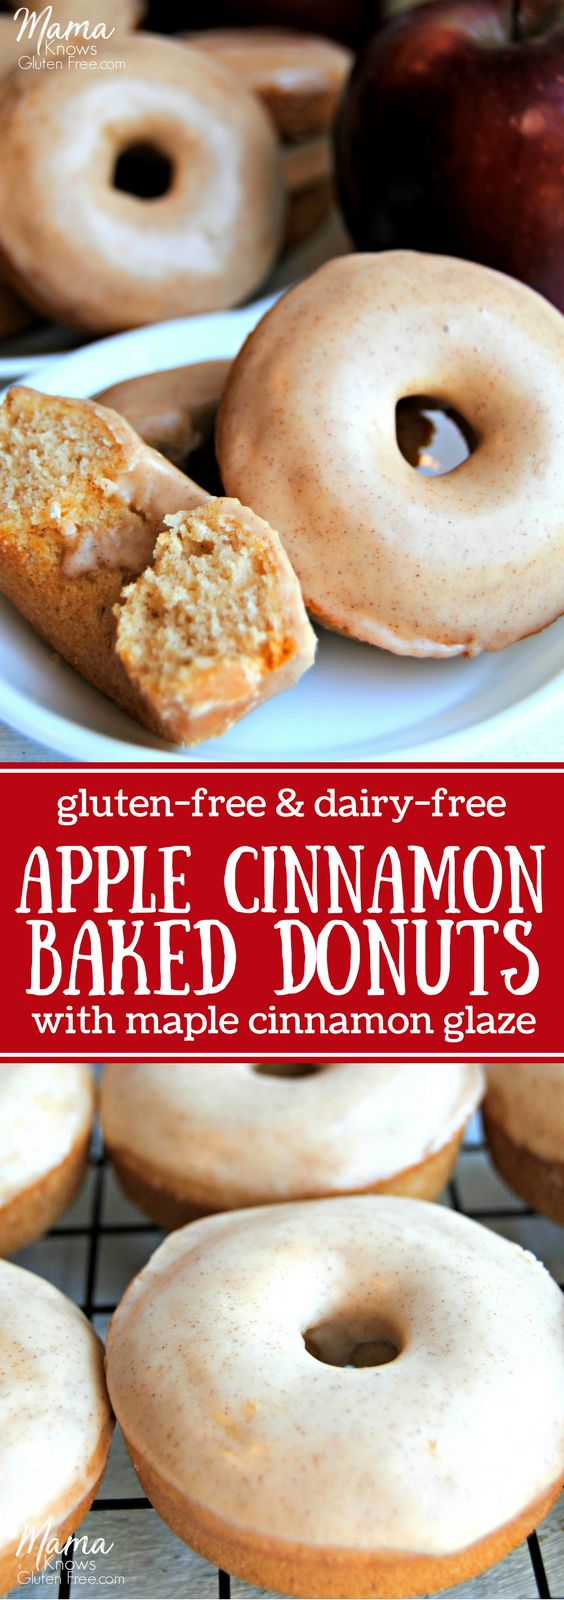 Gluten-Free and Dairy-Free Baked Apple Cinnamon Donuts. These easy baked gluten-free apple cinnamon donuts with maple cinnamon glaze will be your family's favorite fall breakfast treat.